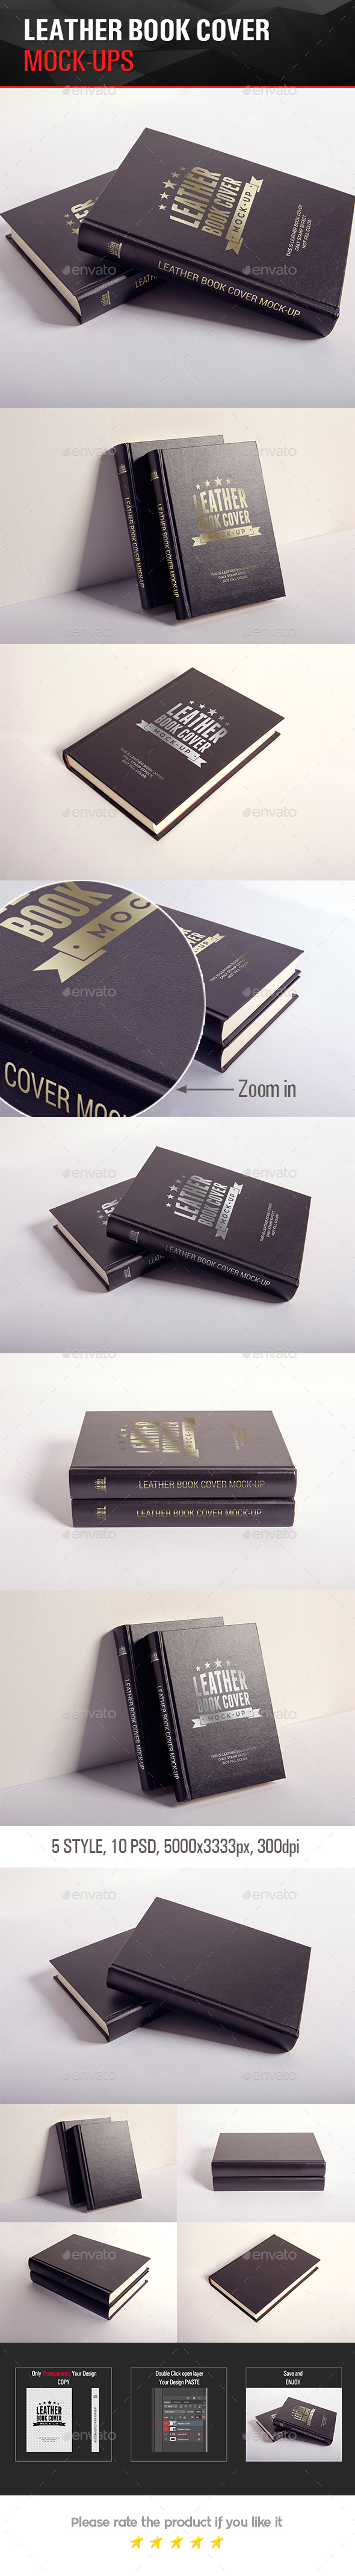 LEATHER BOOK COVER MOCK-UP - Books Print